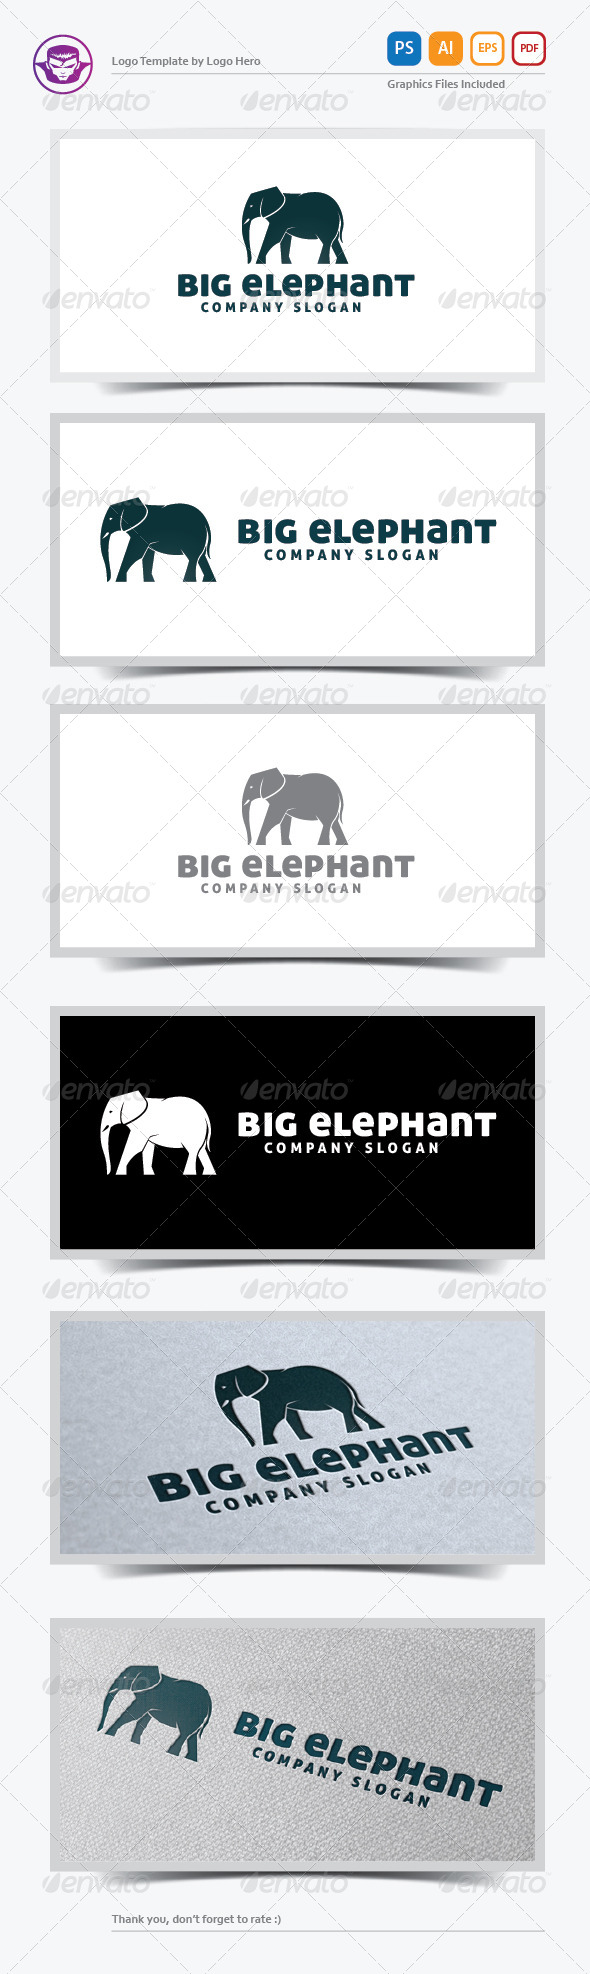 GraphicRiver Big Elephant Logo Template 5706326